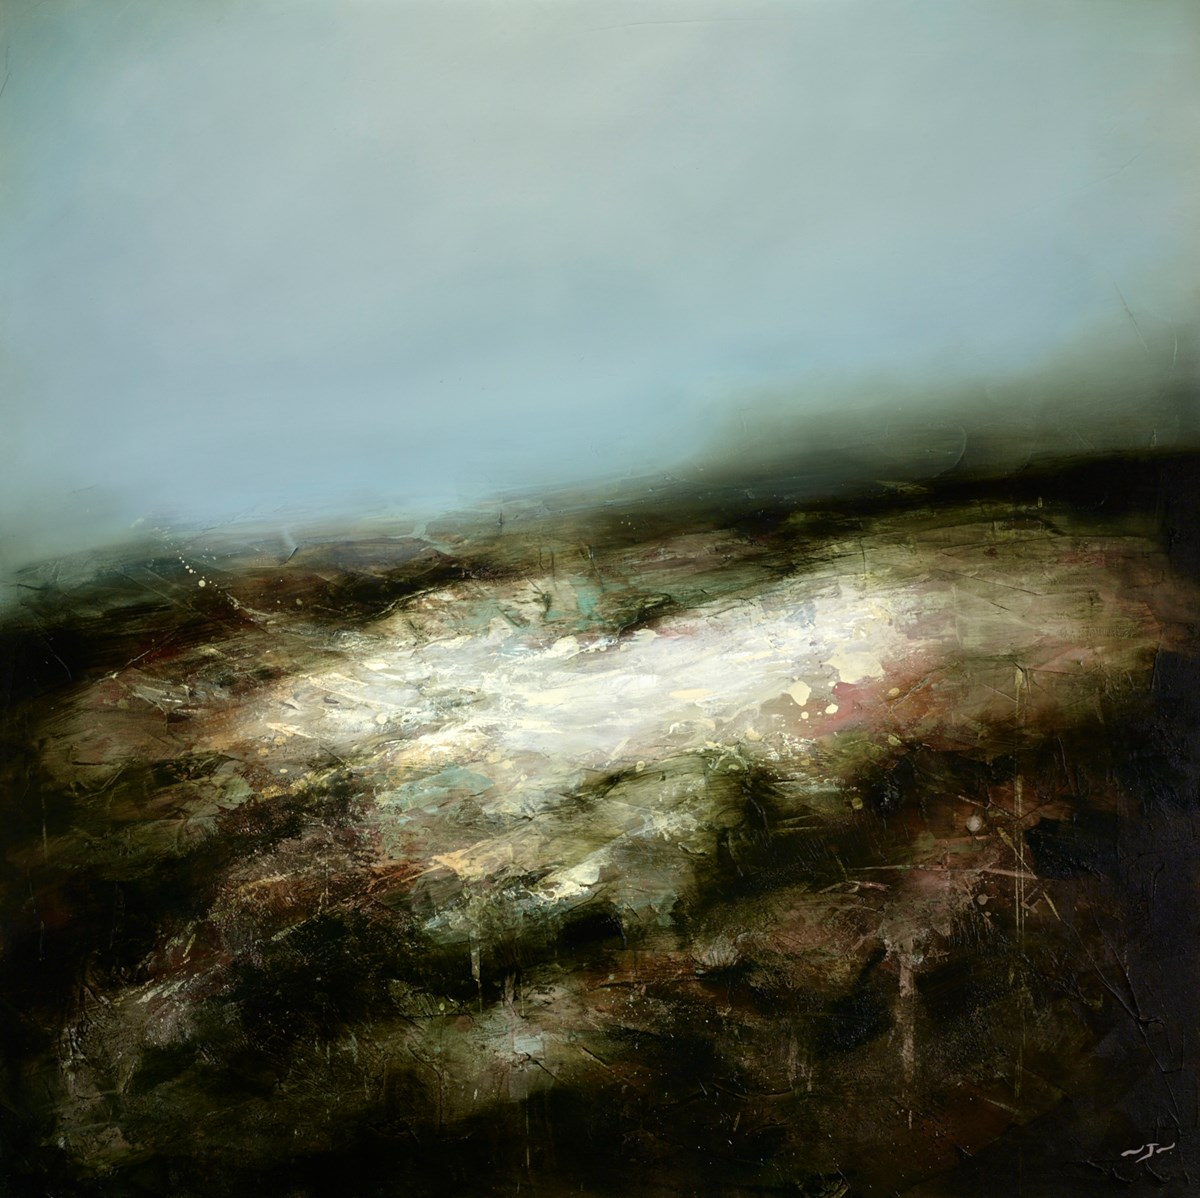 Sistinas by neil nelson -  sized 47x47 inches. Available from Whitewall Galleries